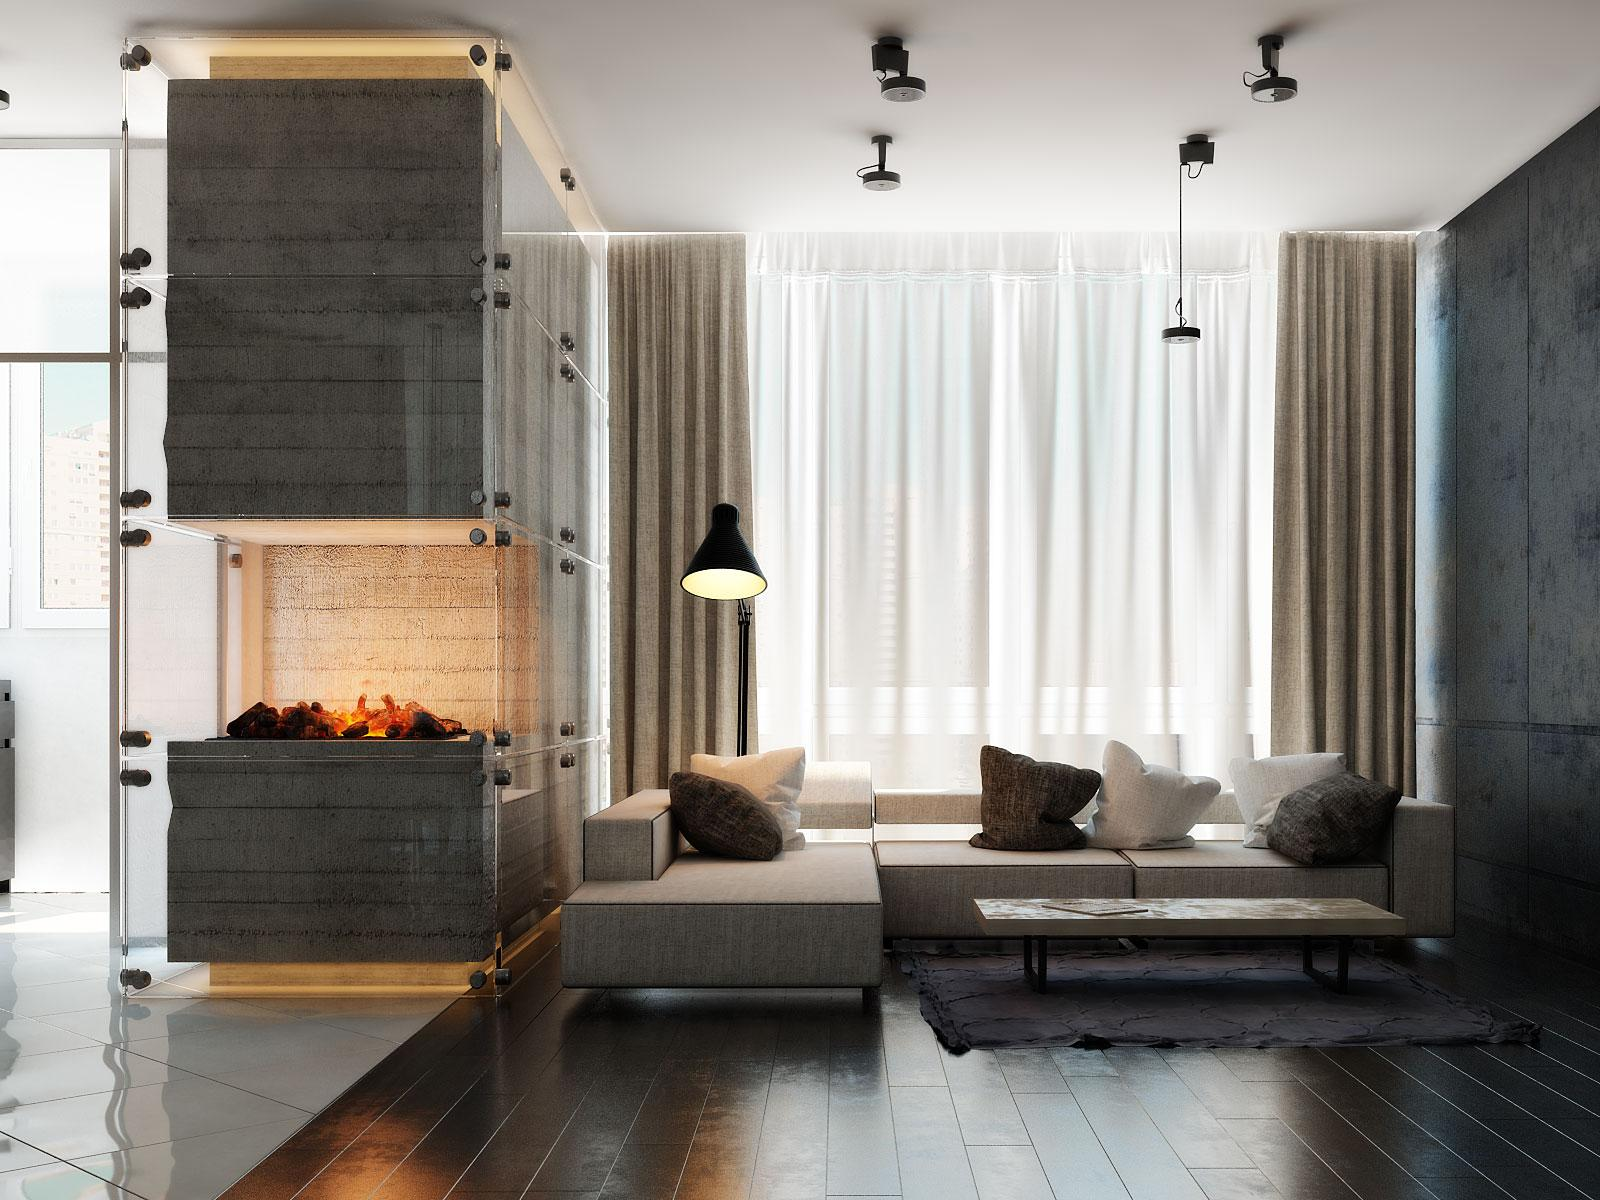 3 Modern Homes With Amazing Fireplaces